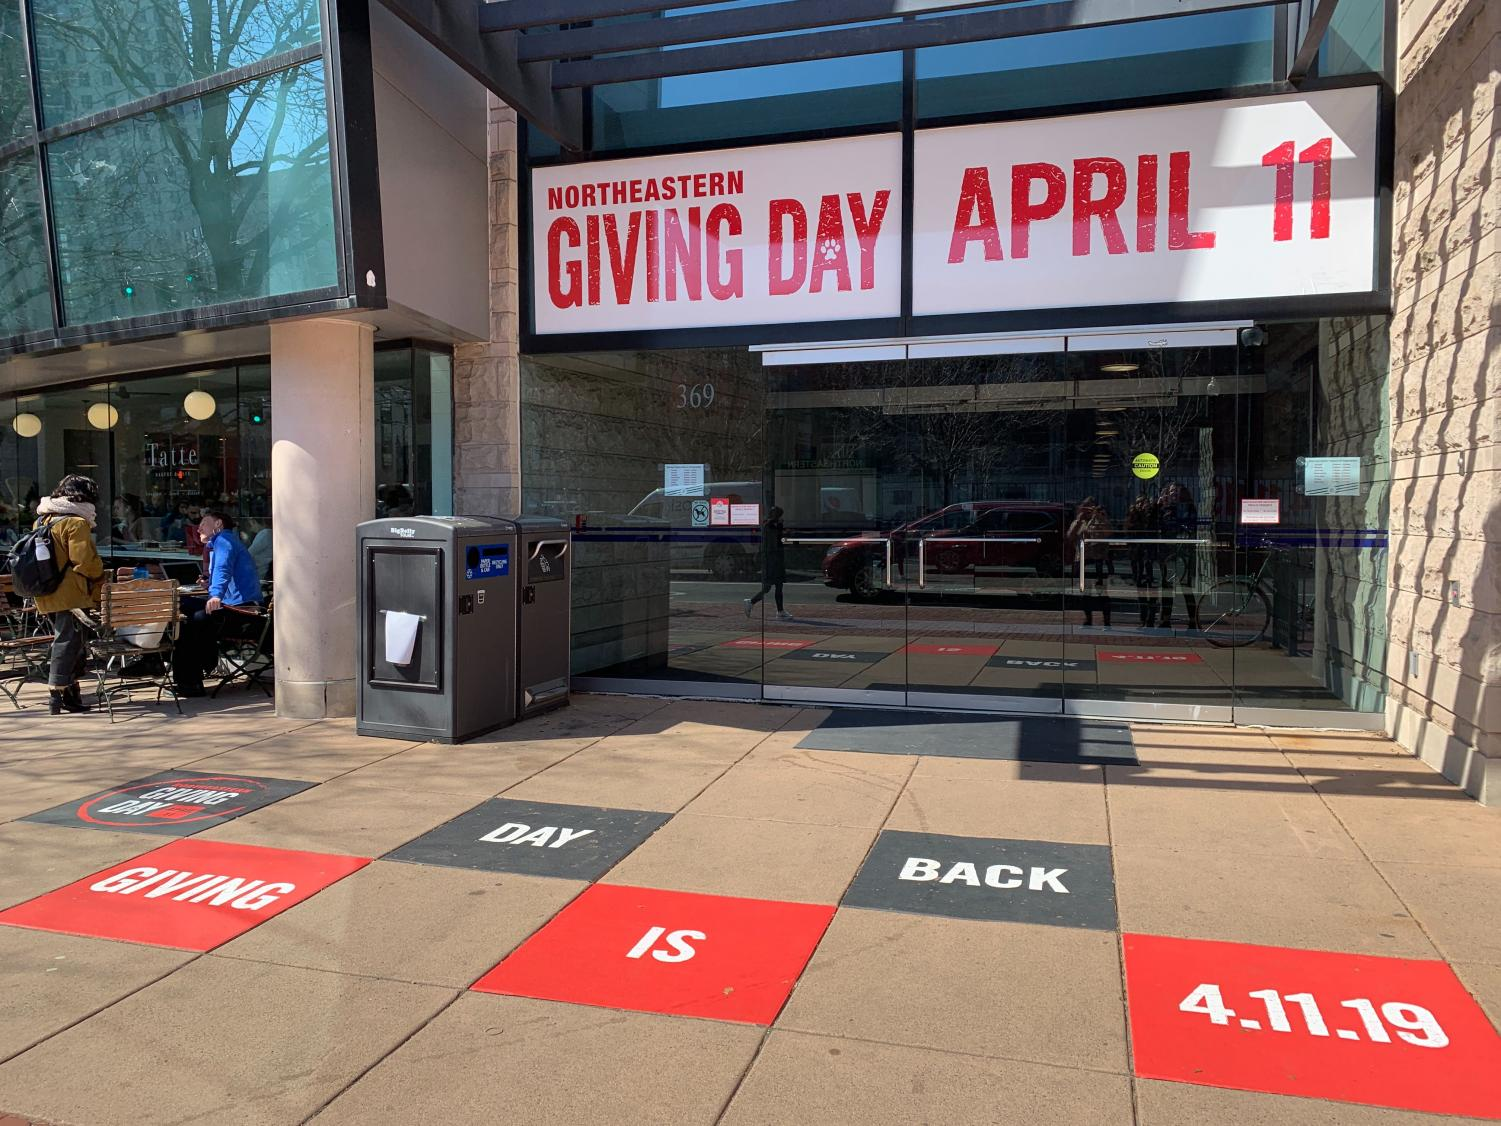 Northeastern heavily advertised Giving Day, which took place April 11.